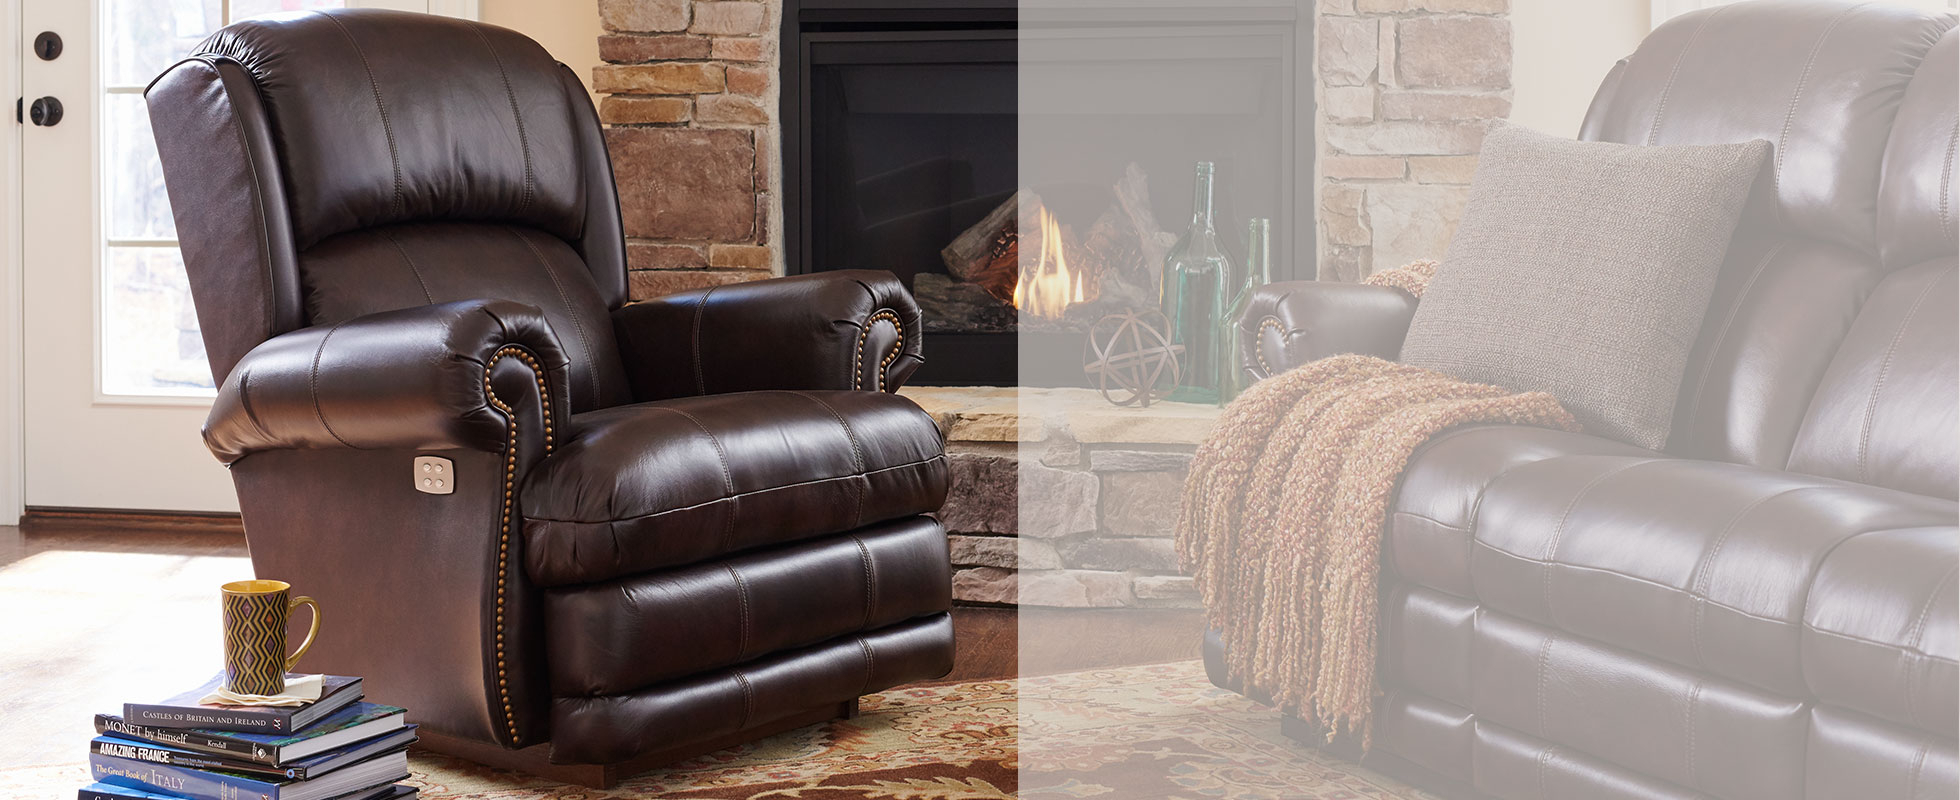 Recliner Chairs & Rocker Recliners | La Z Boy Intended For Gibson Swivel Cuddler Chairs (View 23 of 25)